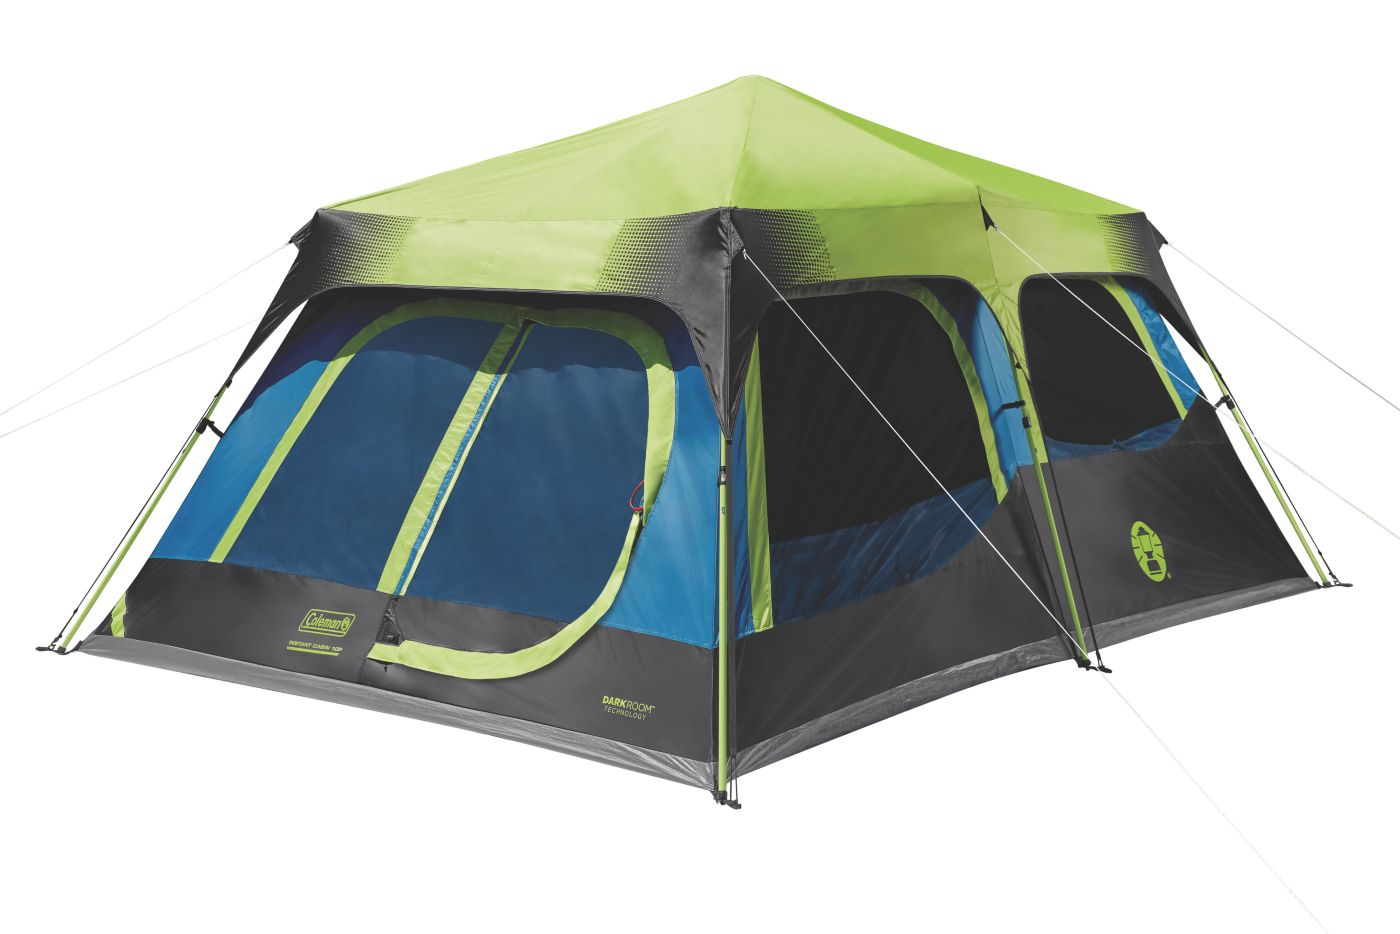 10-person Dark Room Instant Cabin Tent With Rainfly Coleman